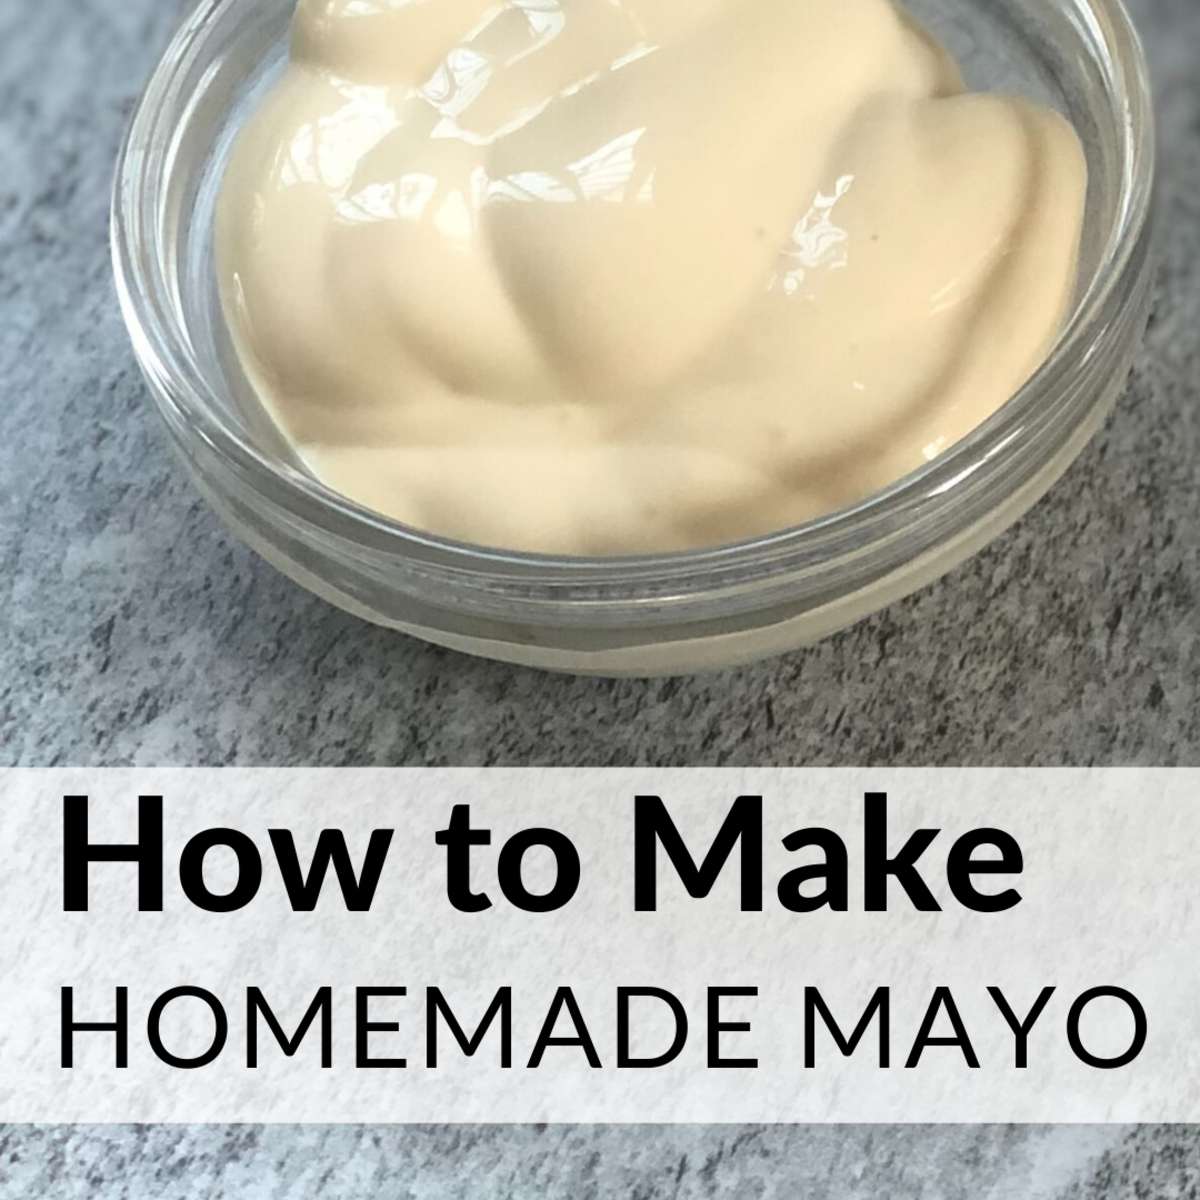 3 Tips for Perfect Homemade Mayonnaise Every Time